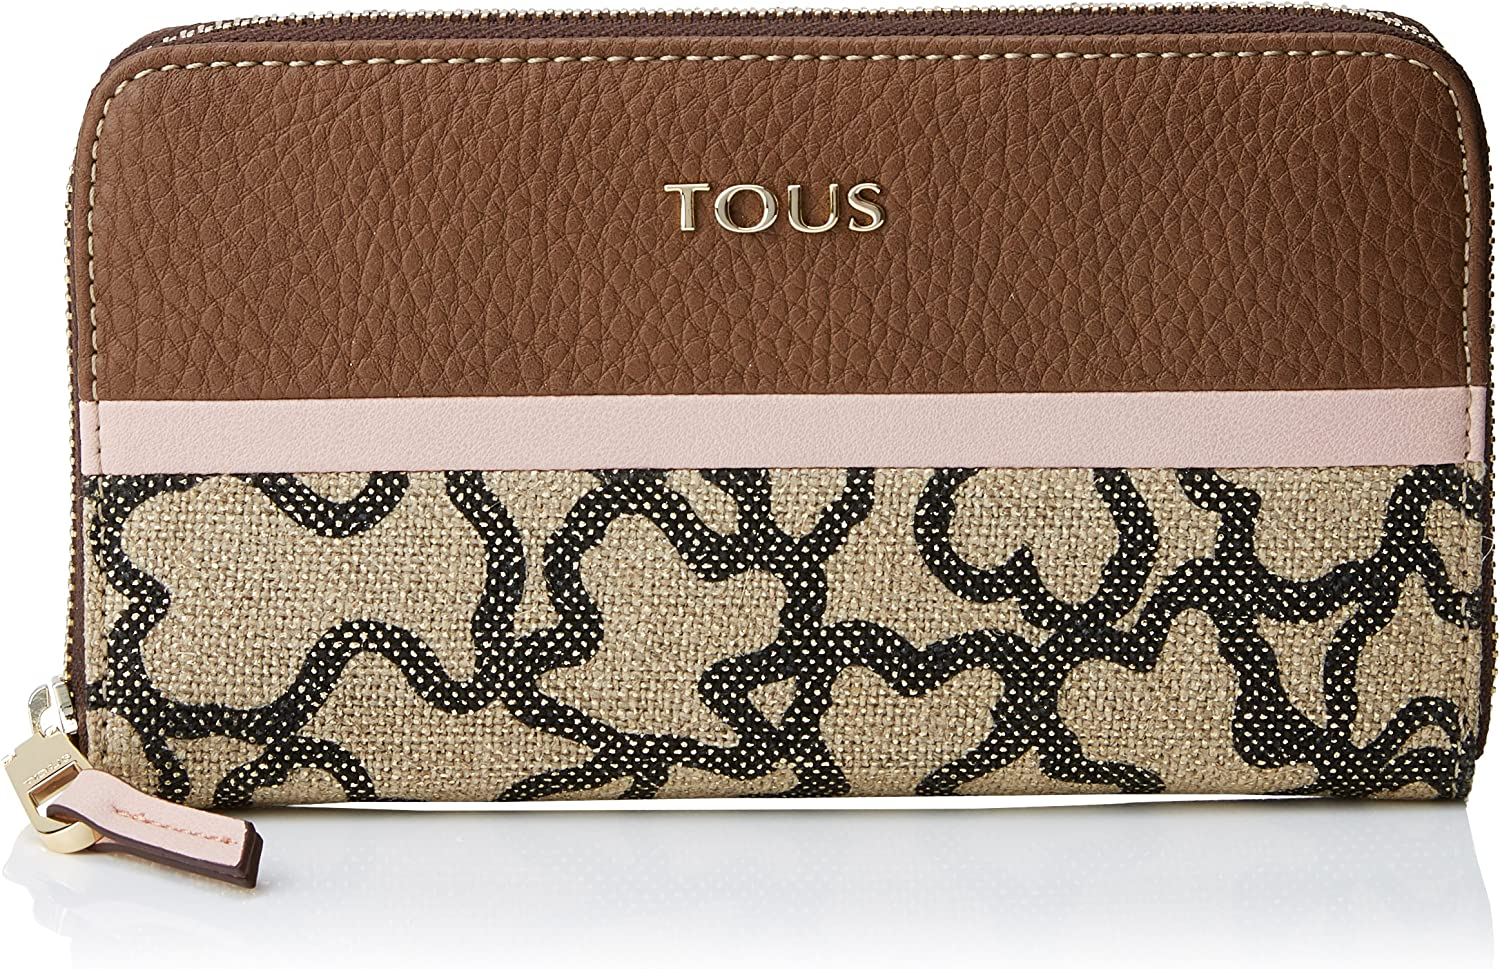 Tous Elice New Mediana Women's Marrón-rosa NEW before selling Dealing full price reduction ☆ Wallet Multicolour